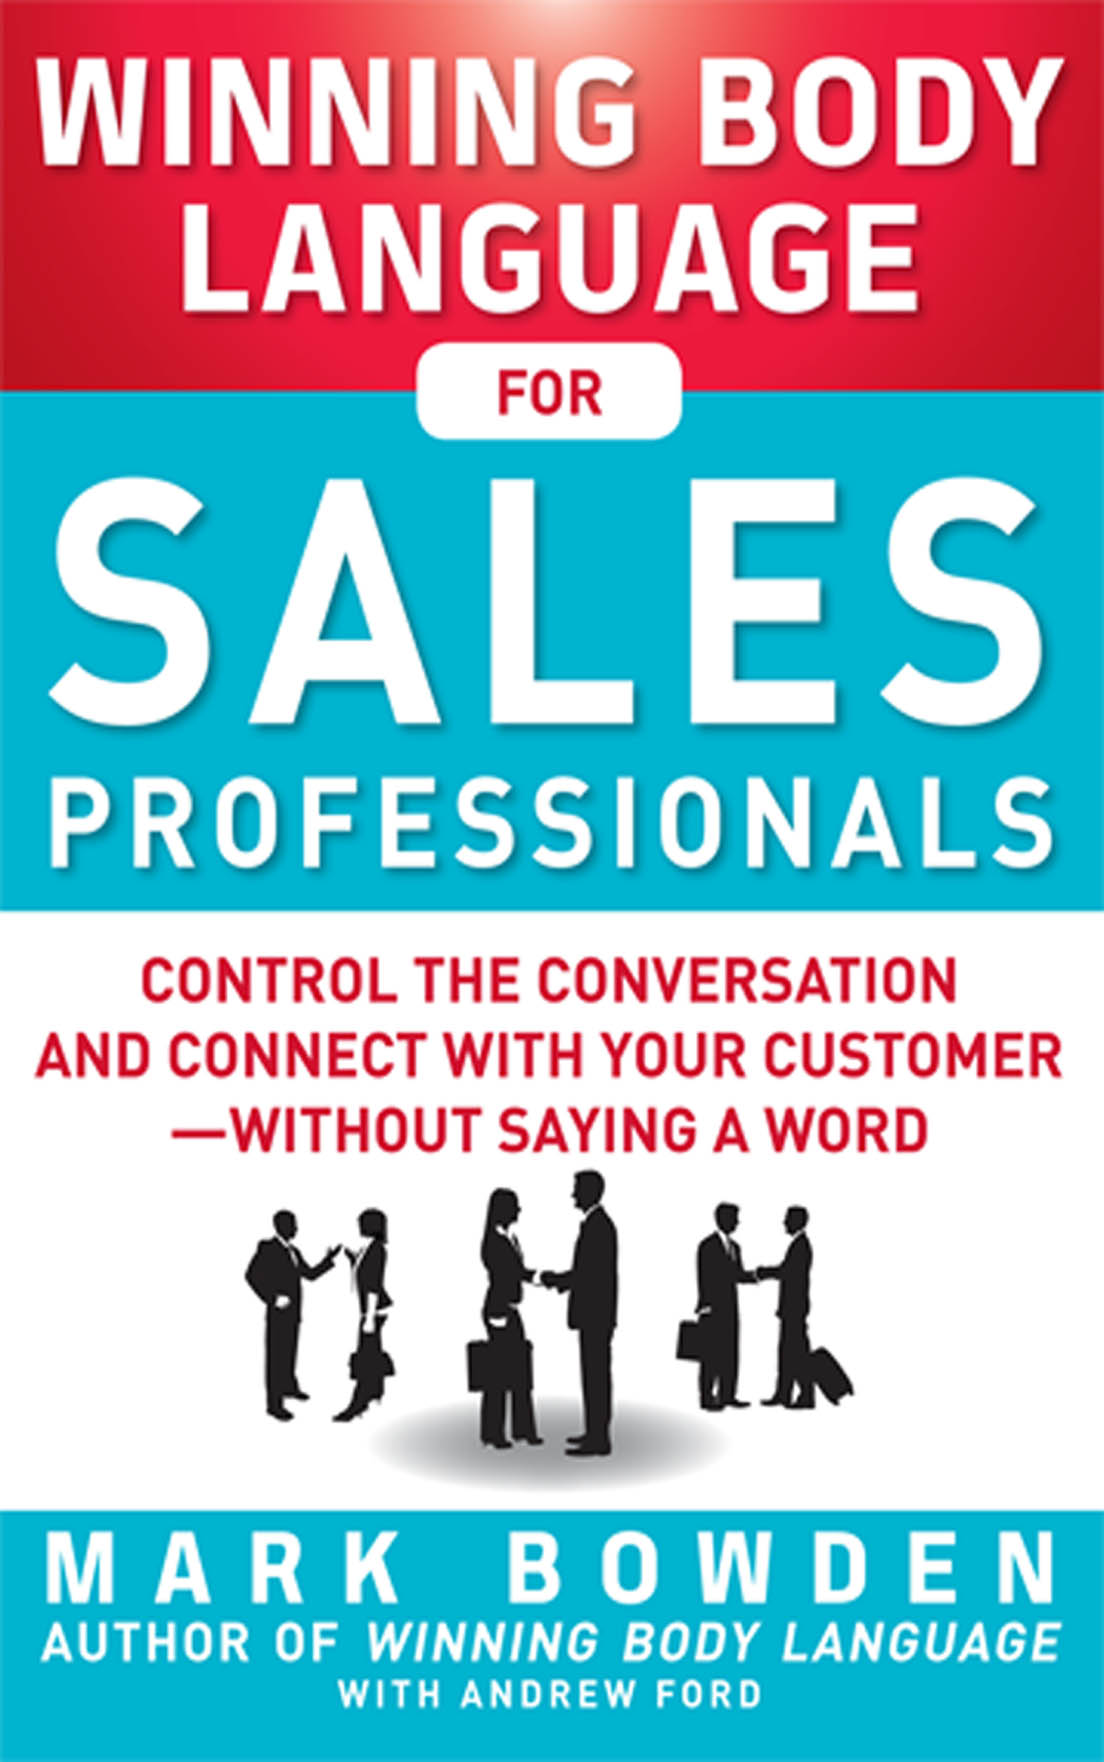 Download Ebook Winning Body Language for Sales Professionals:   Control the Conversation and Connect with Your Customer—without Saying a Word by Mark Bowden Pdf